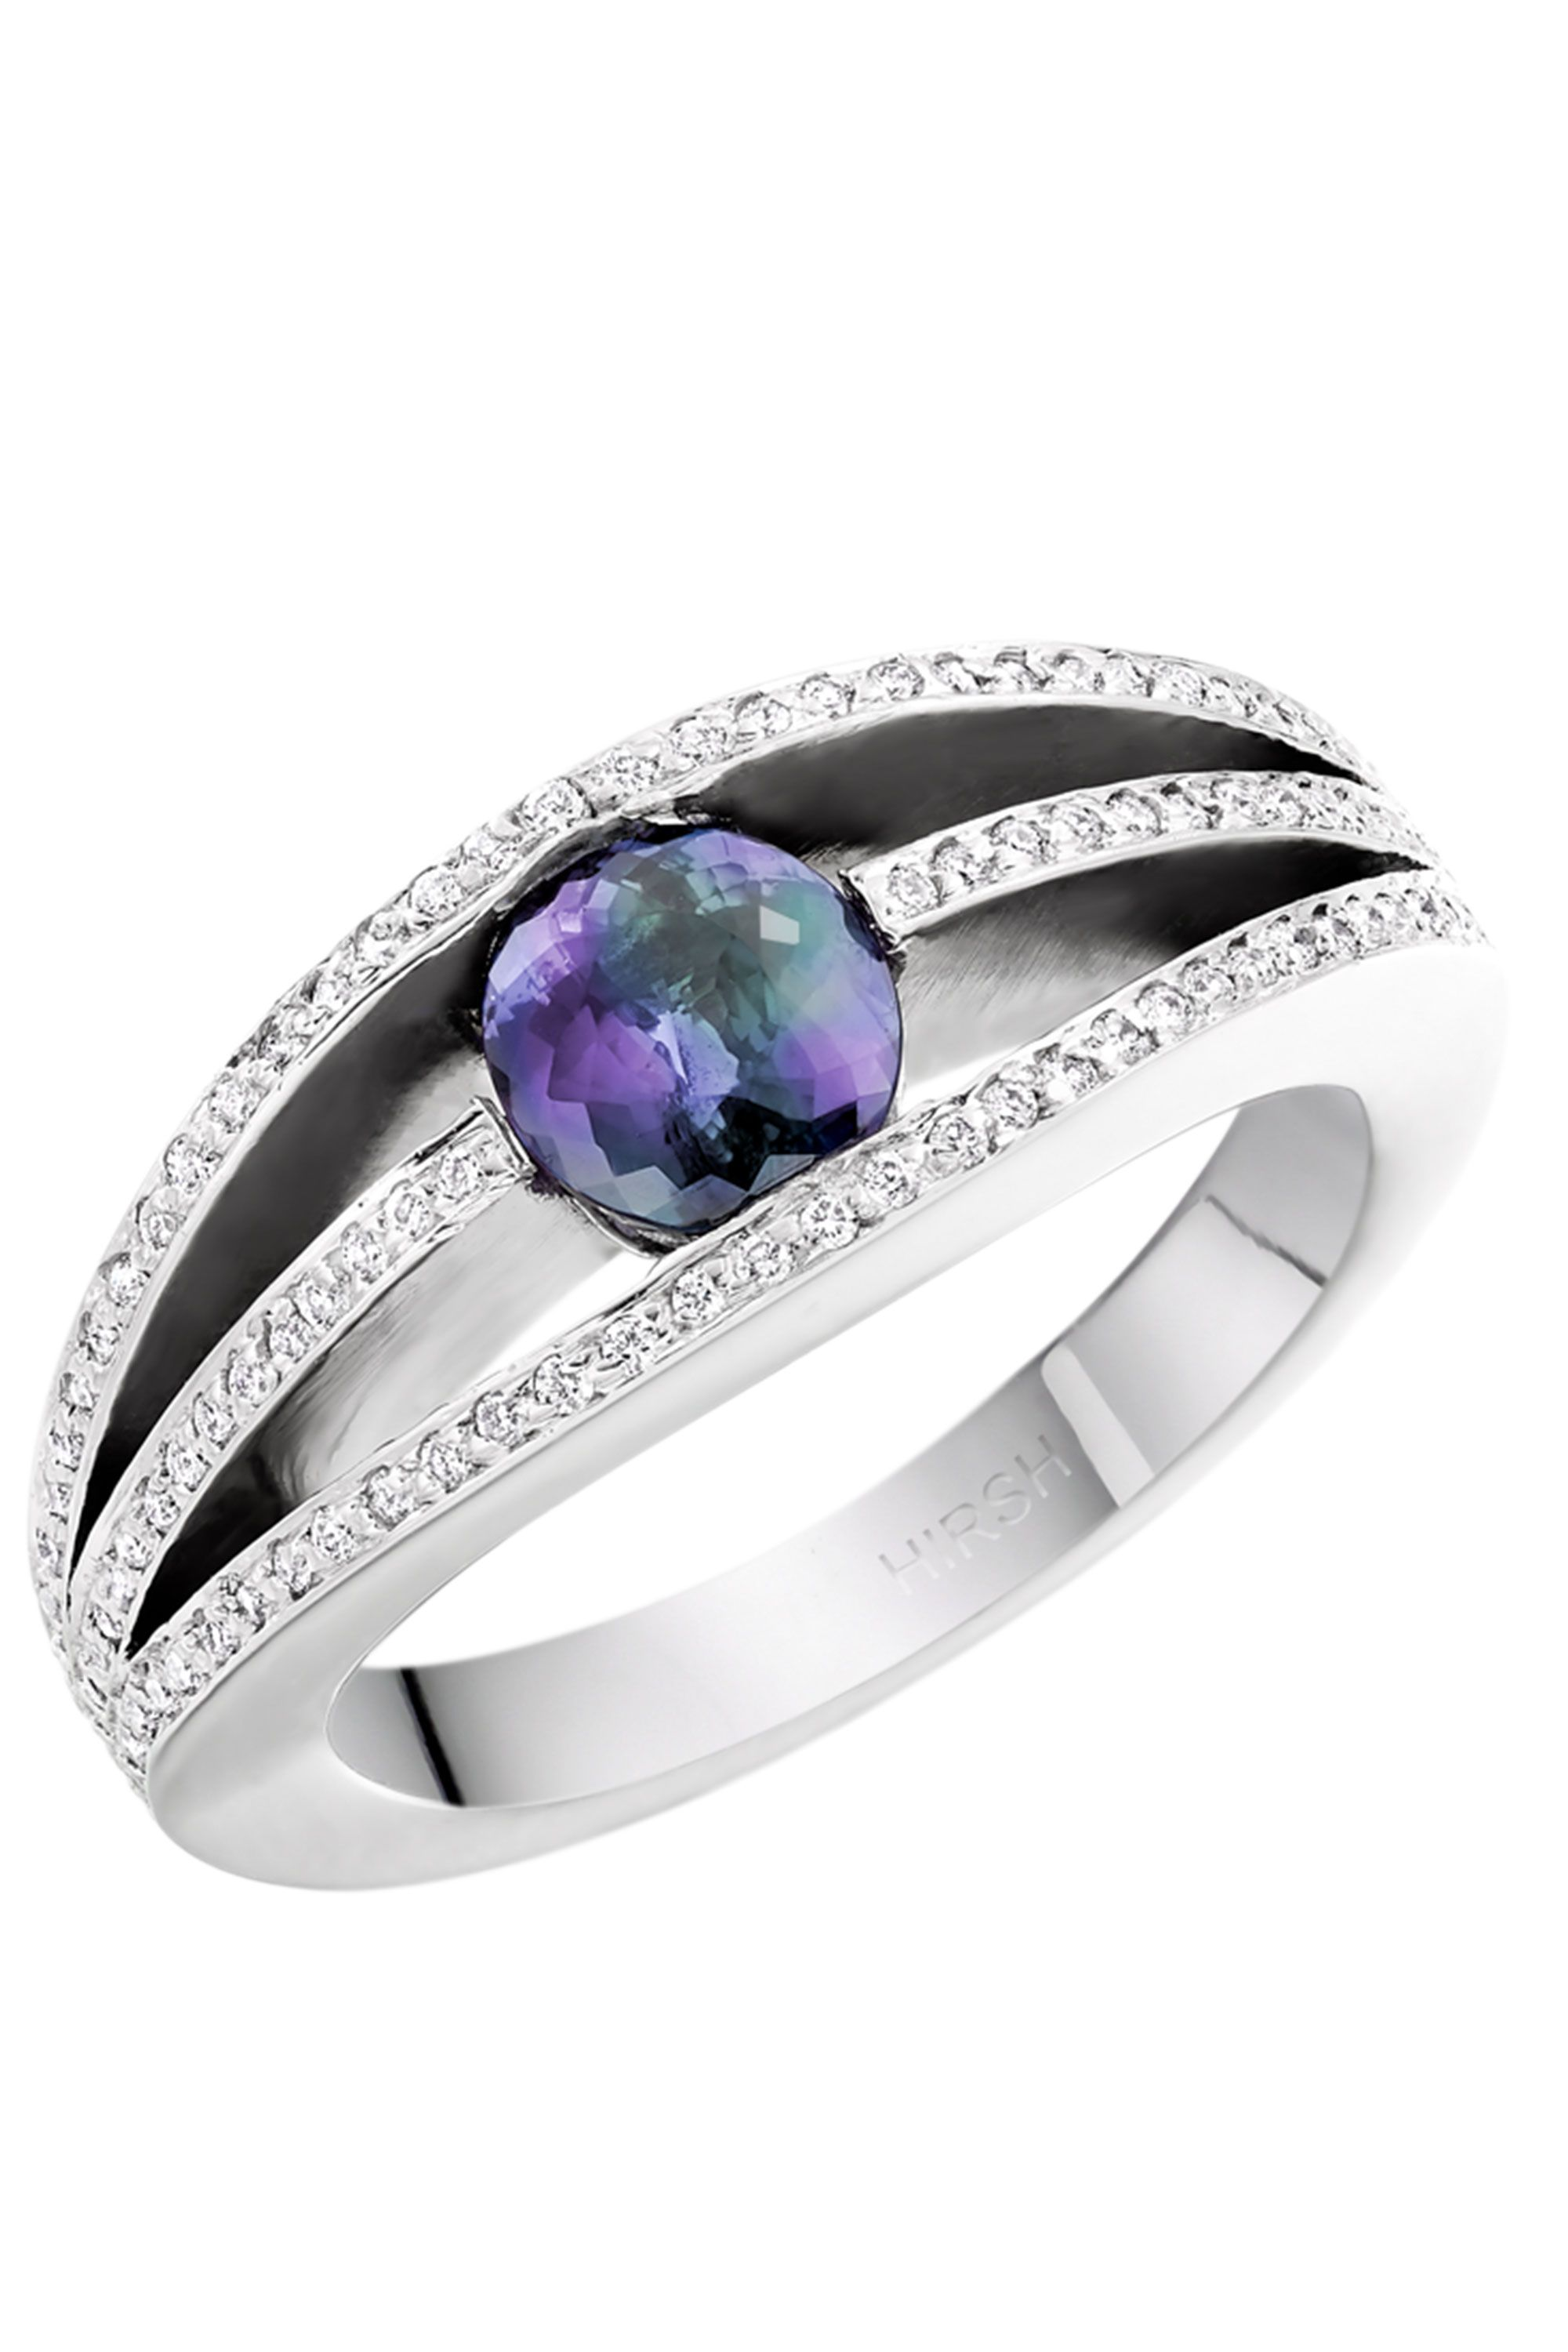 band ksvhs colored engagement diamond fancy gemstone rings antique jewellery sapphire